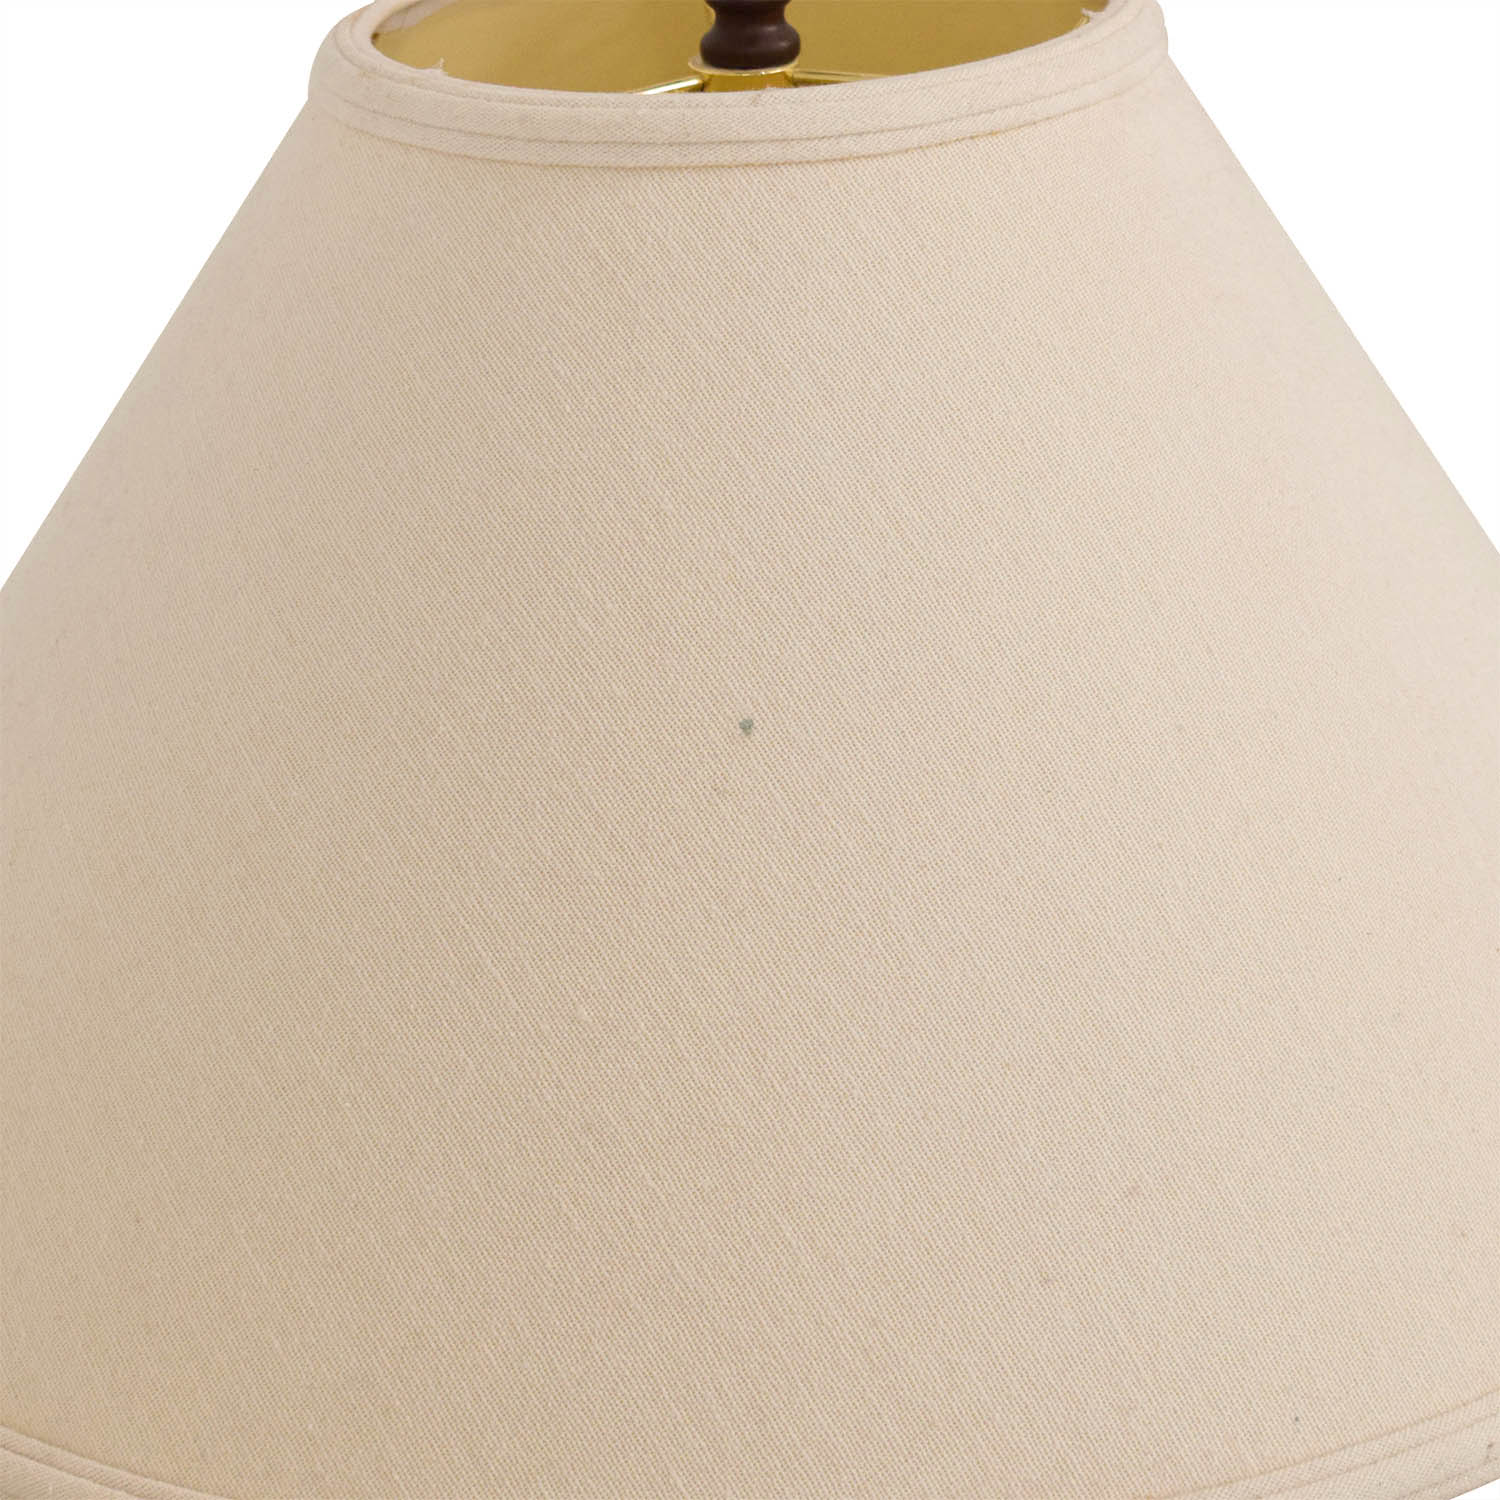 Bedside Table Lamps dimensions